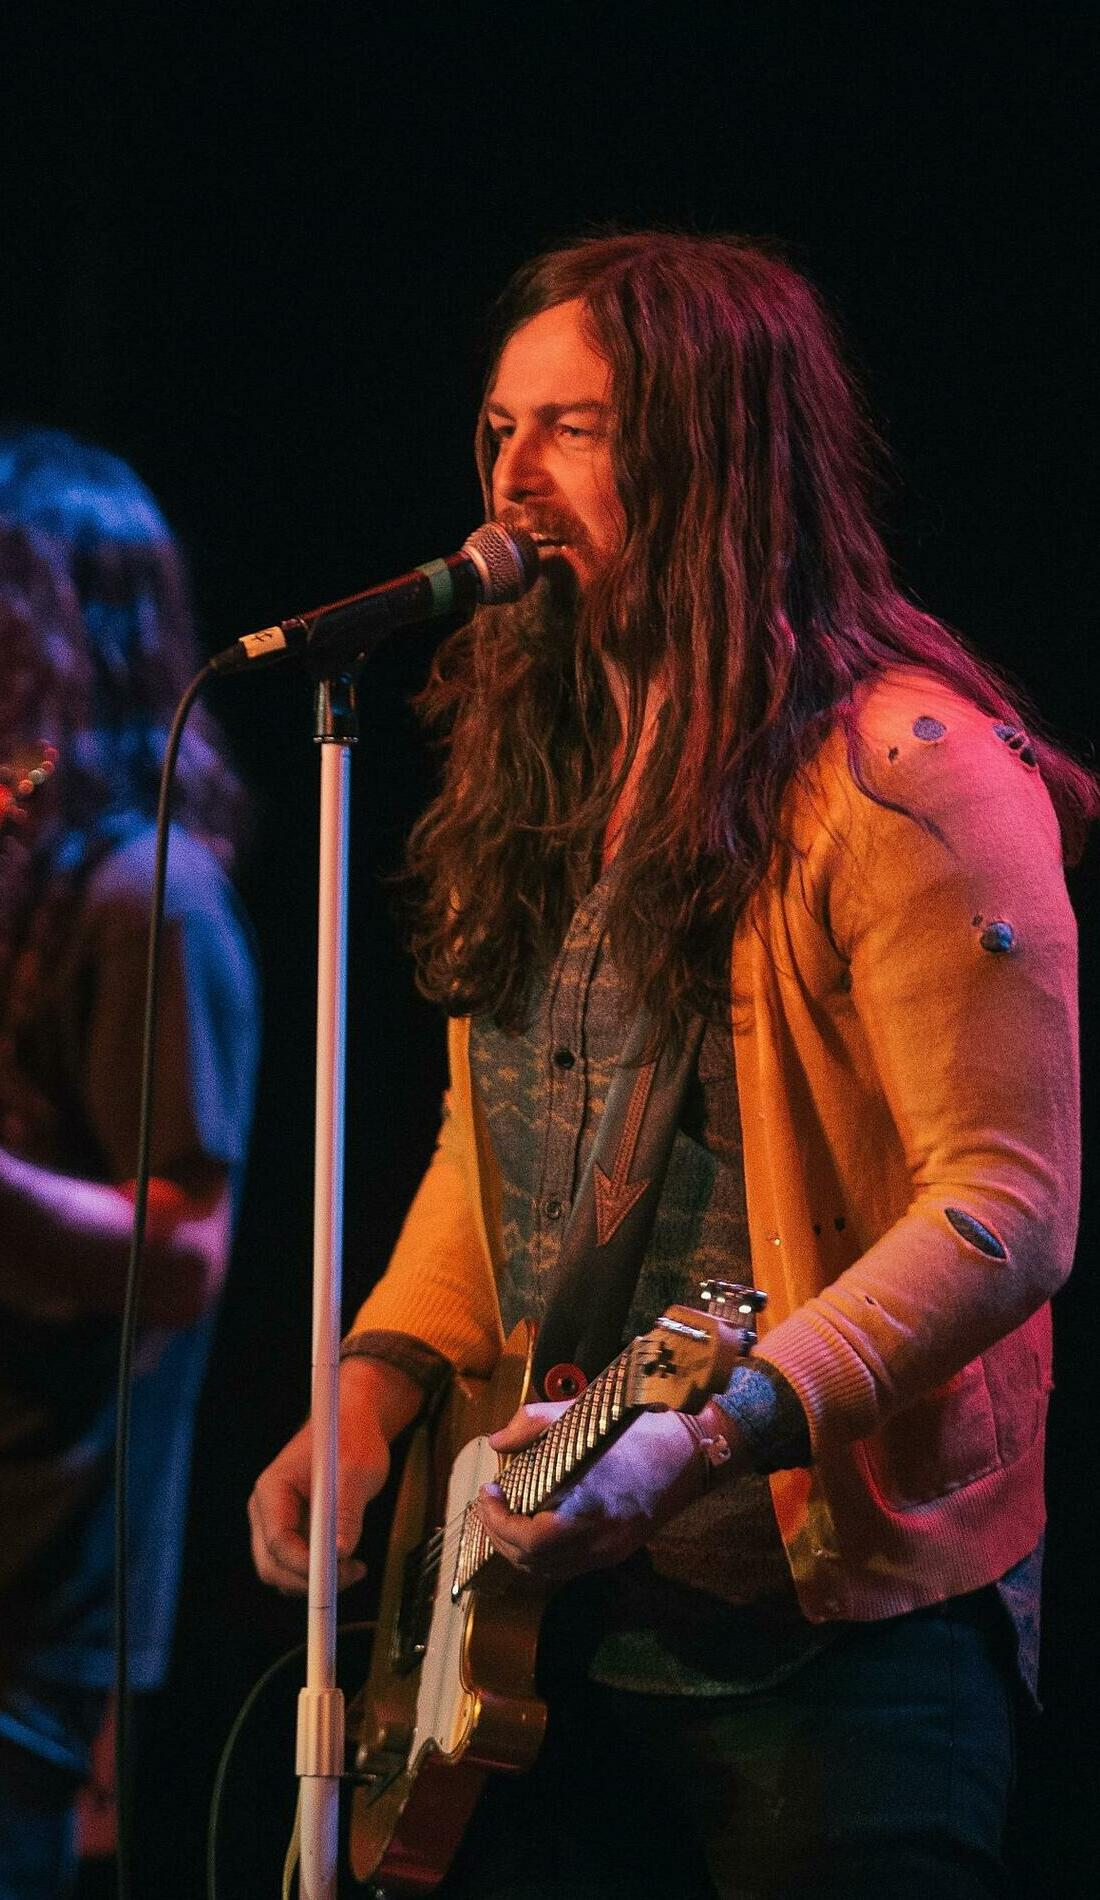 A J Roddy Walston & The Business live event